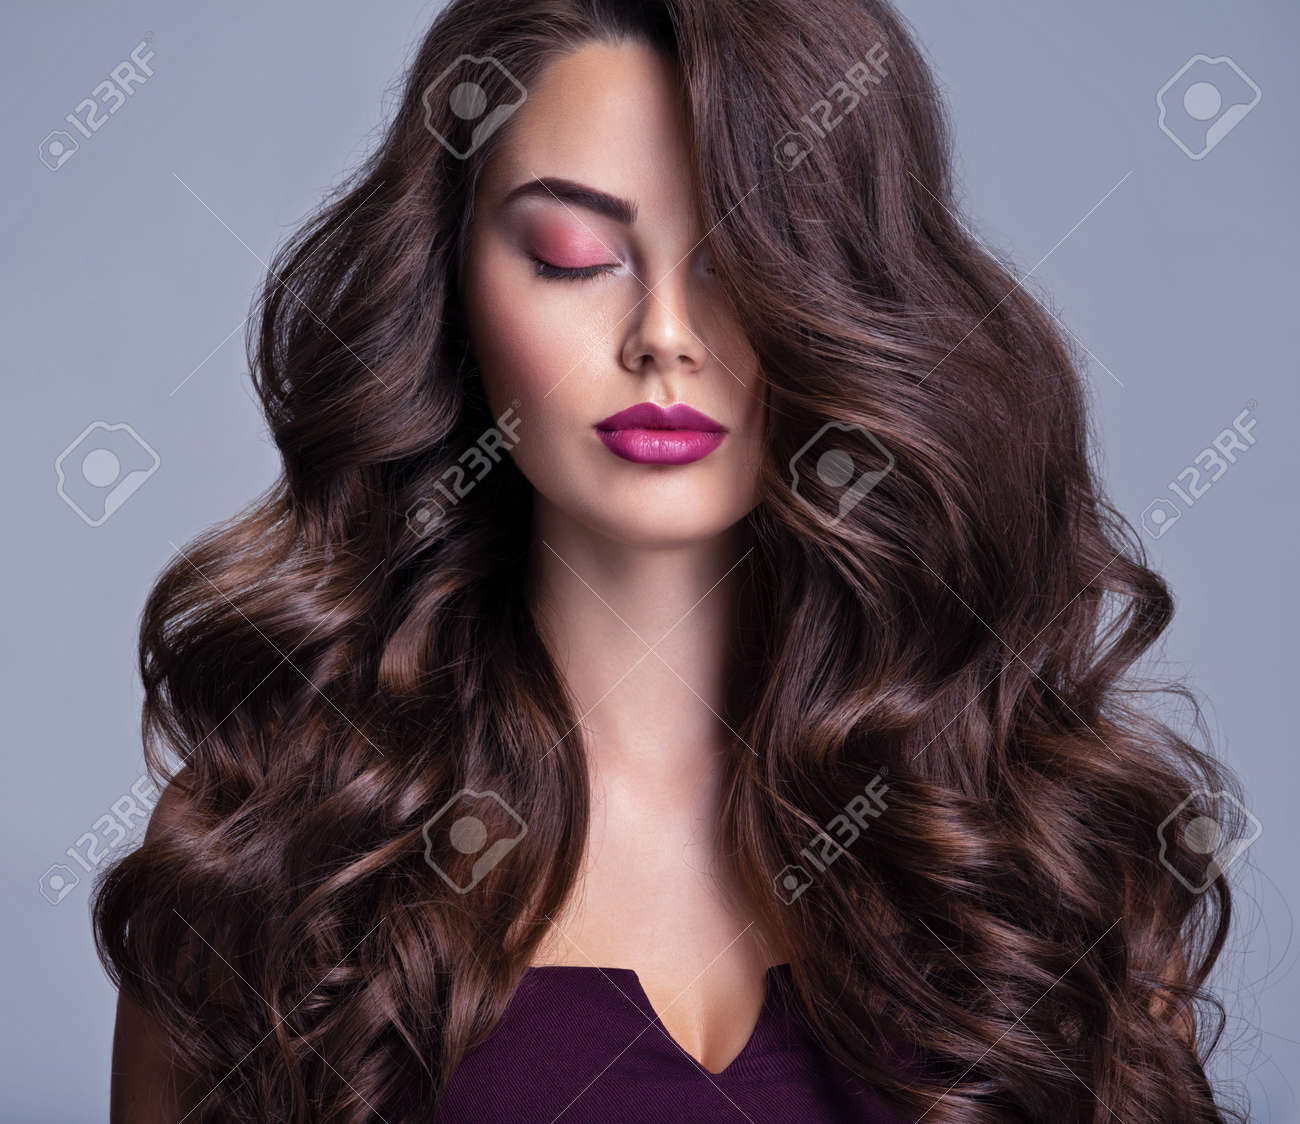 Fashion model with wavy hairstyle. Attractive young girl with curly hair posing at studio. Face of a beautiful woman with long brown curly hair. Female face with purple makeup. Violet make-up. - 156608385